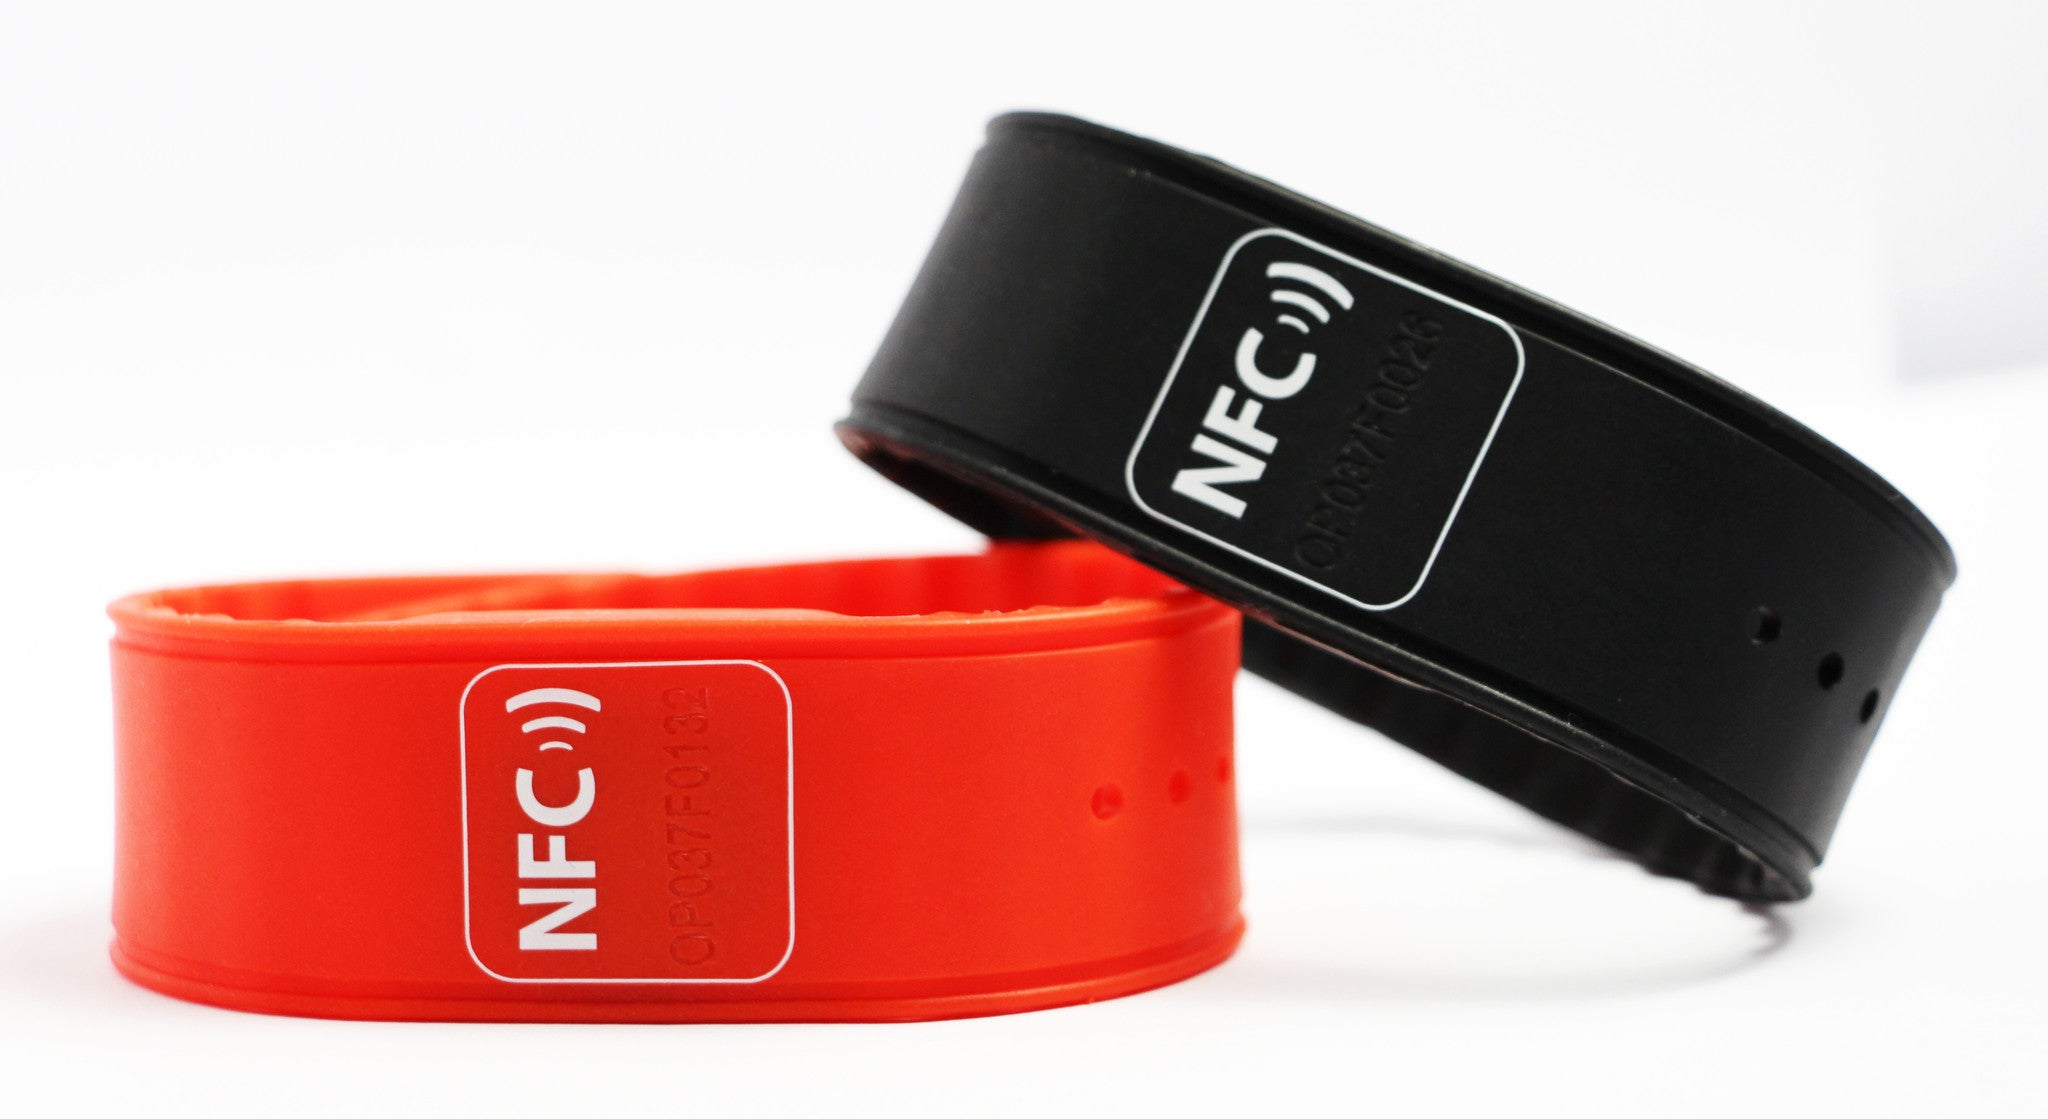 Adjustable Wristband OP037 with Mifare 1k NXP chip